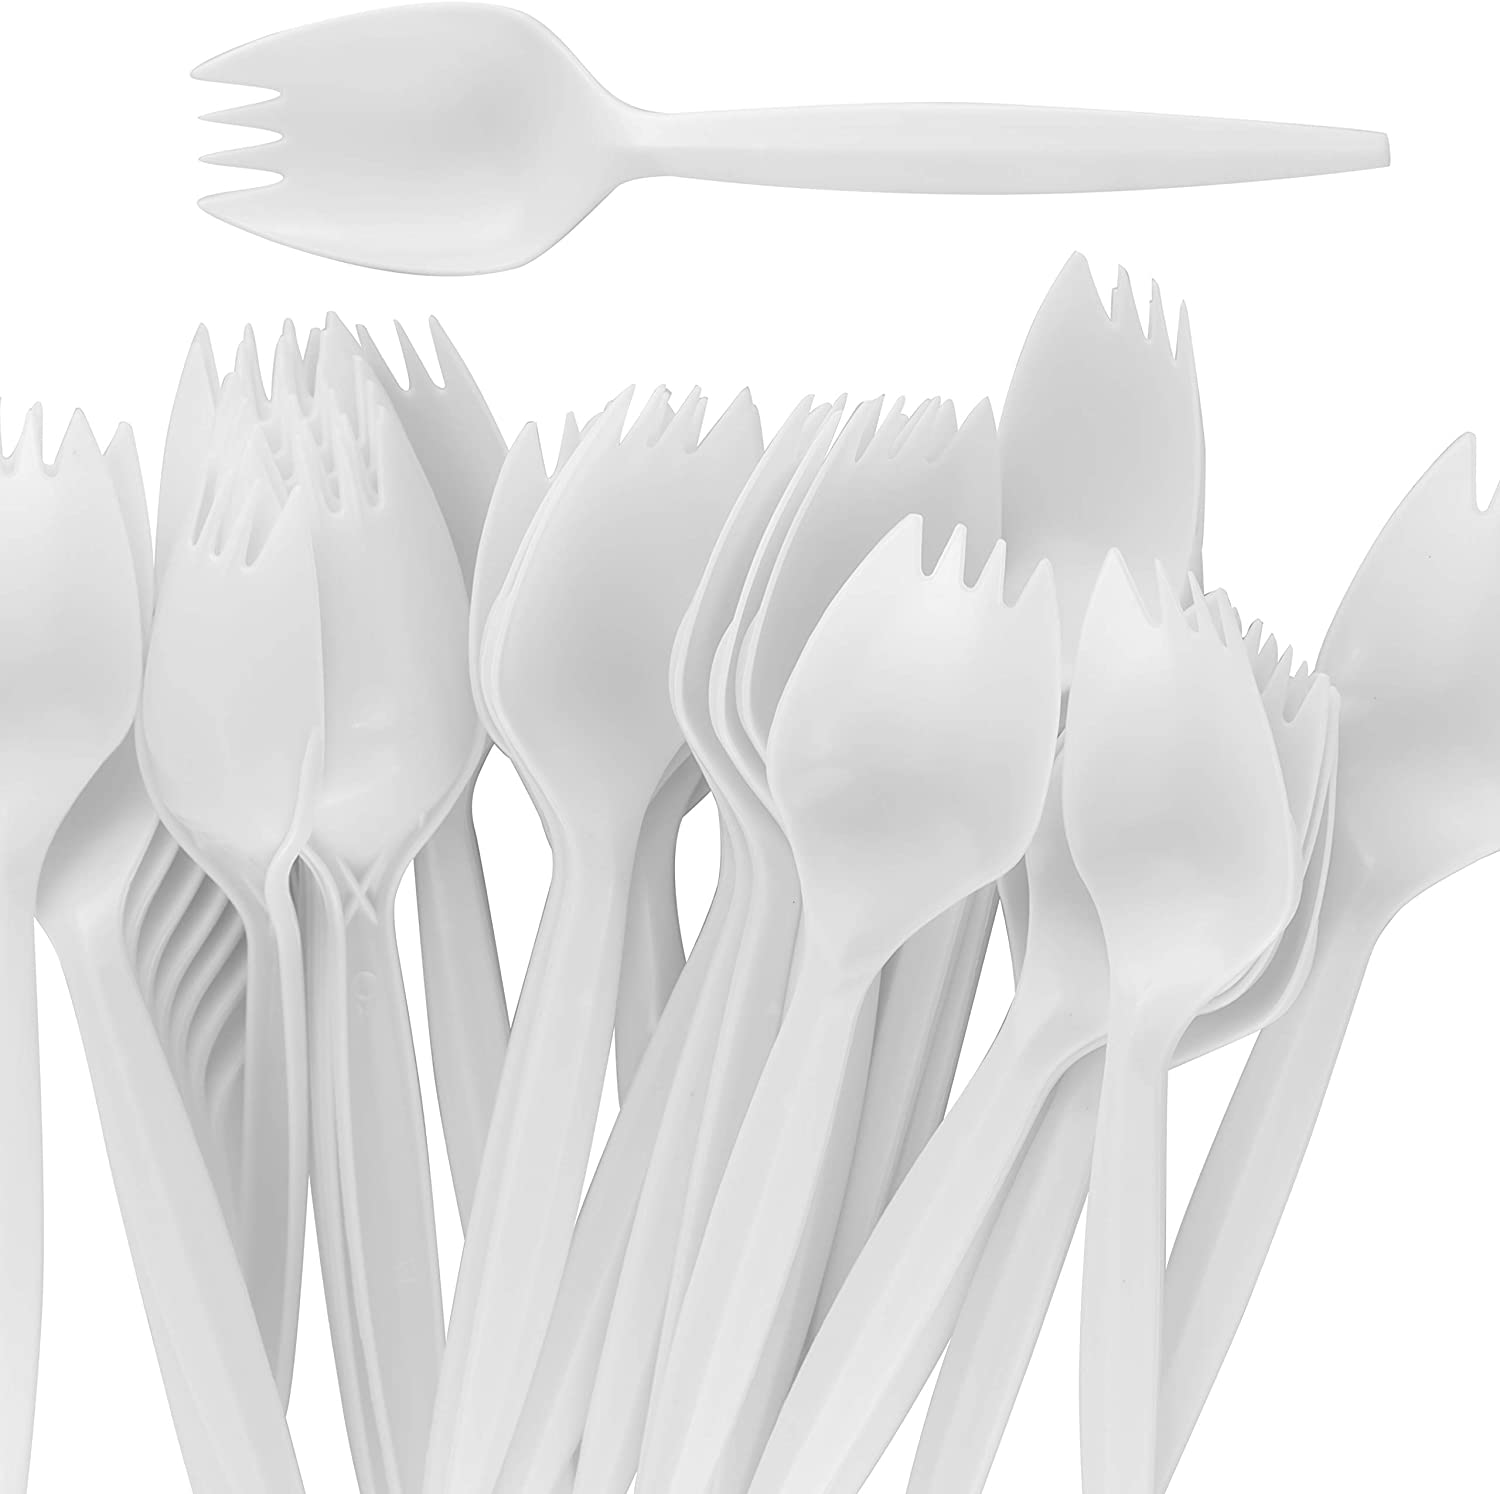 BPA-Free White Disposable Sporks 50Pk. Recyclable, Eco-Friendly and Kid-Safe 2-in-1 Utensils Built Strong to Last Large Meals. Great for School Lunch, Picnics or Restaurant and Party Supply